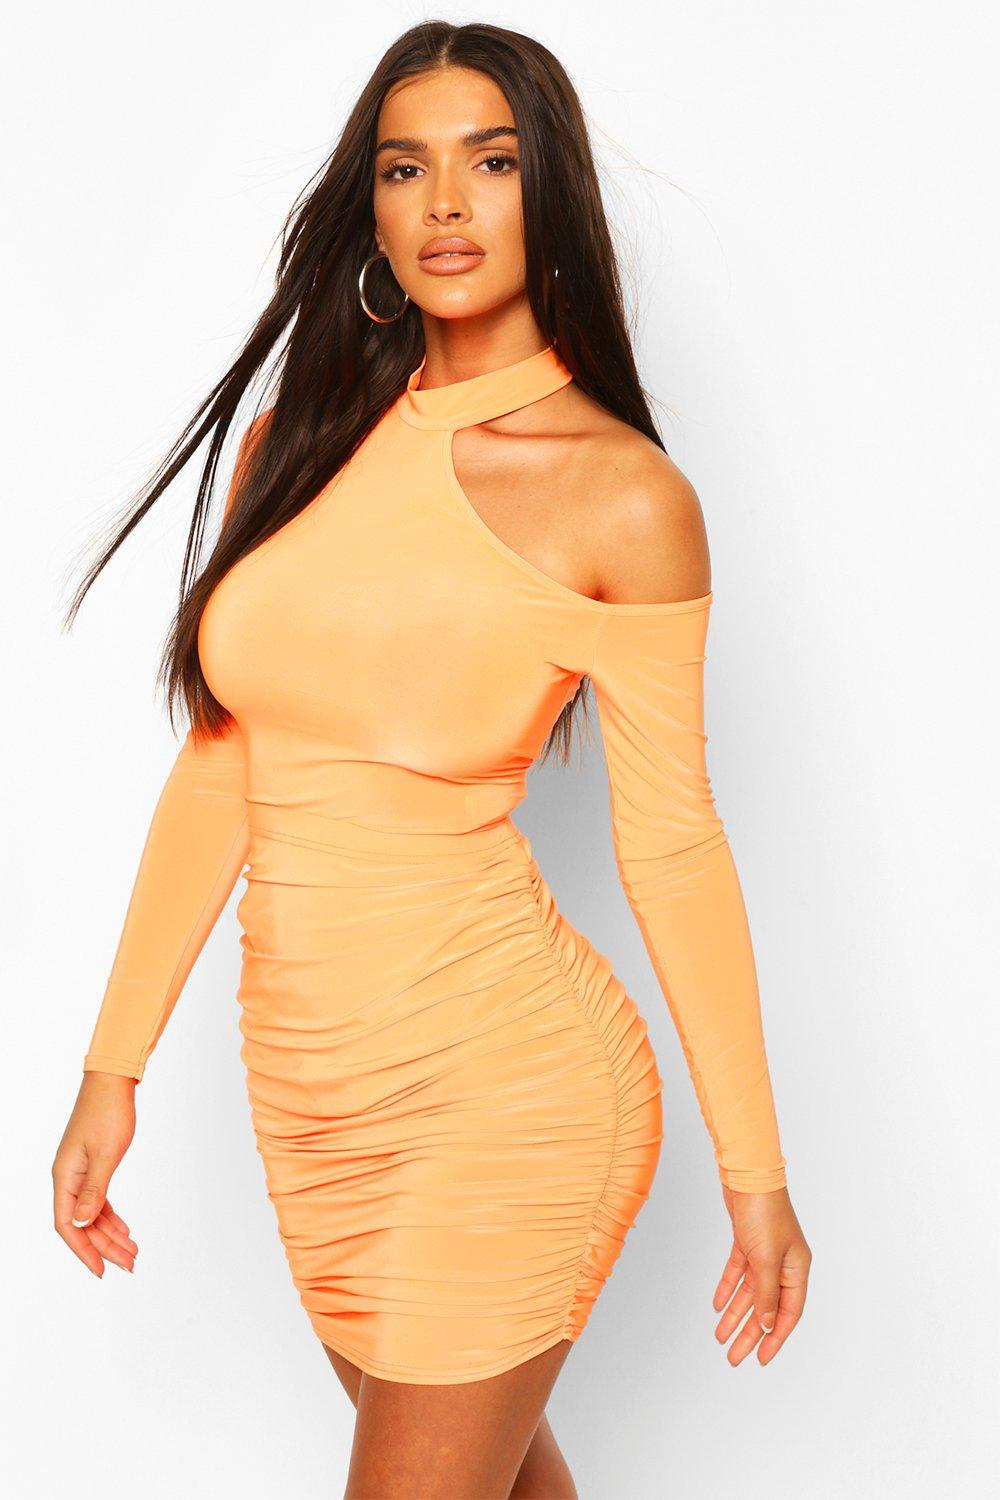 boohoo Womens Cut Out Neon Body Top - Orange - 10, Orange